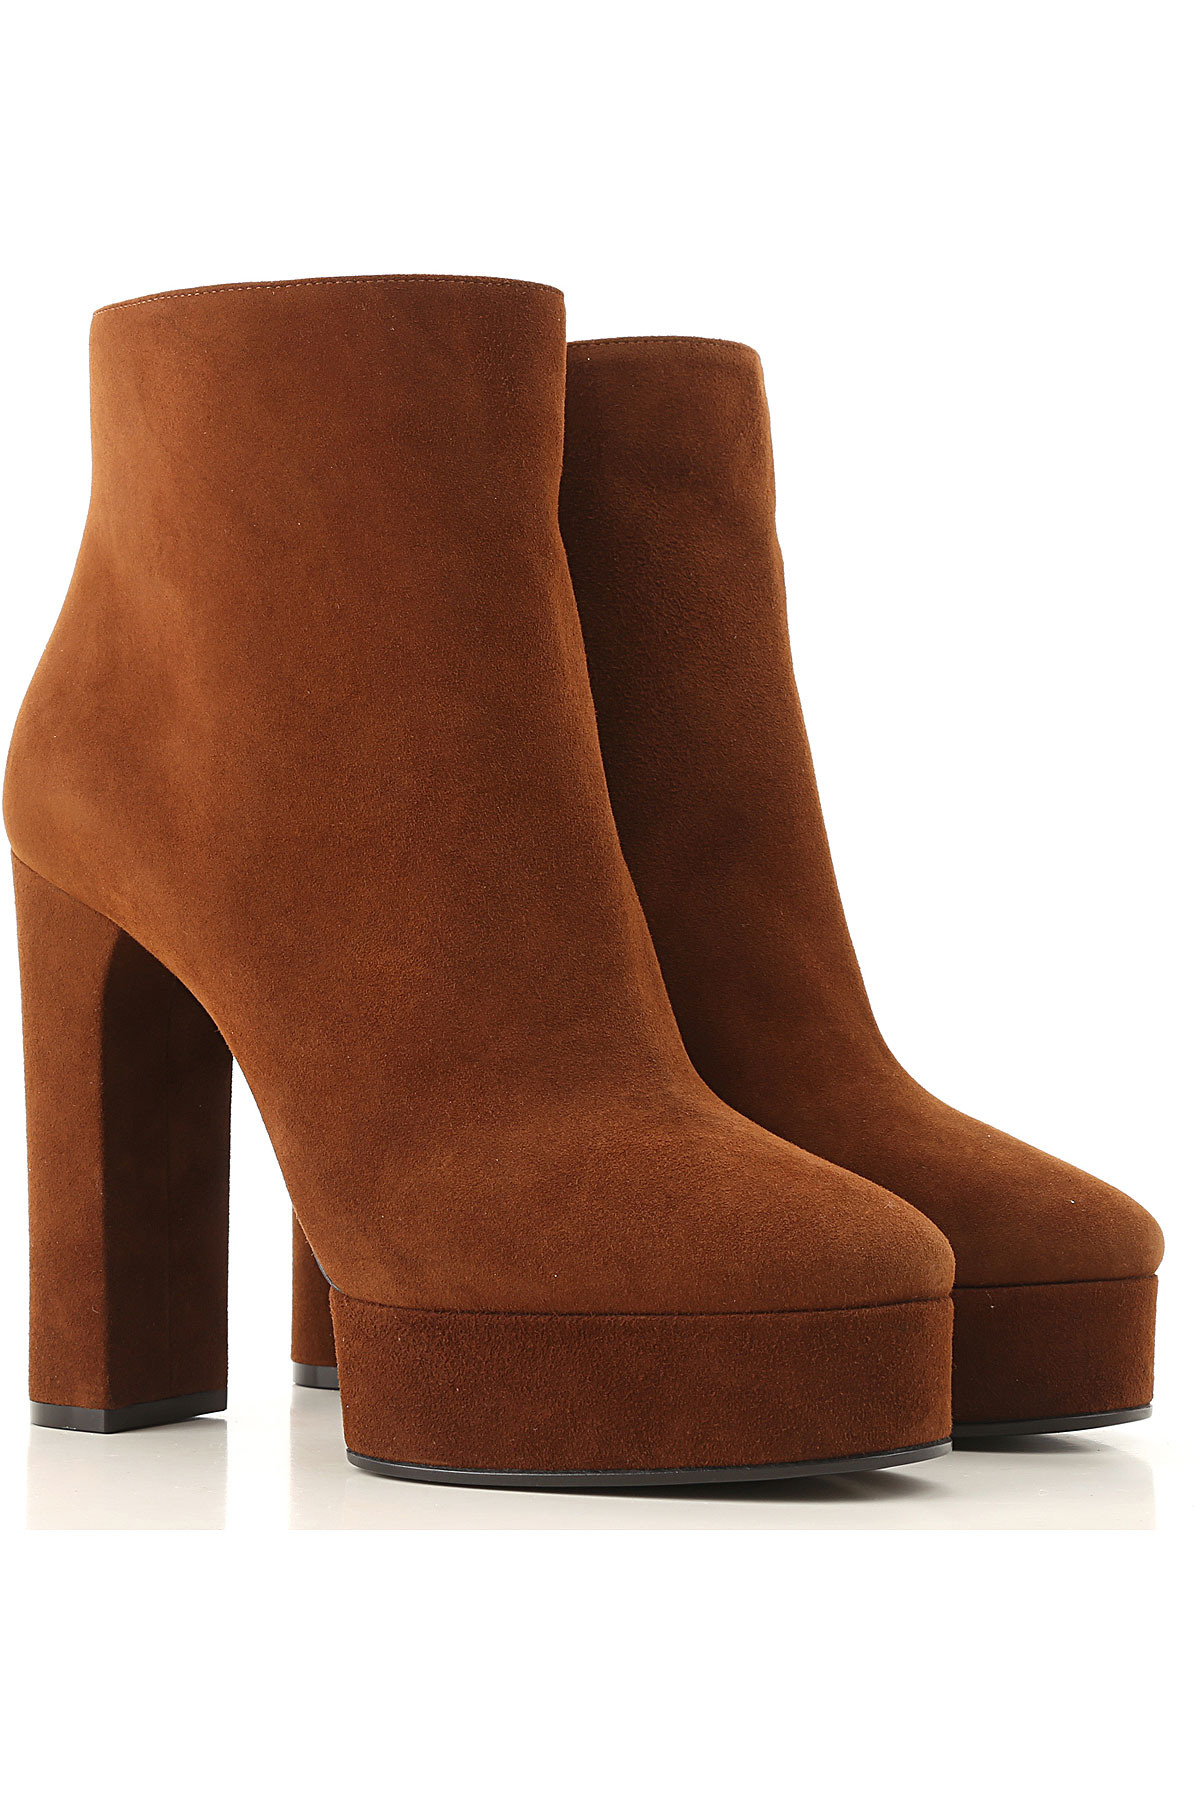 Casadei Boots for Women, Booties On Sale, Tobacco, Suede leather, 2019, 10 6 7 8 9